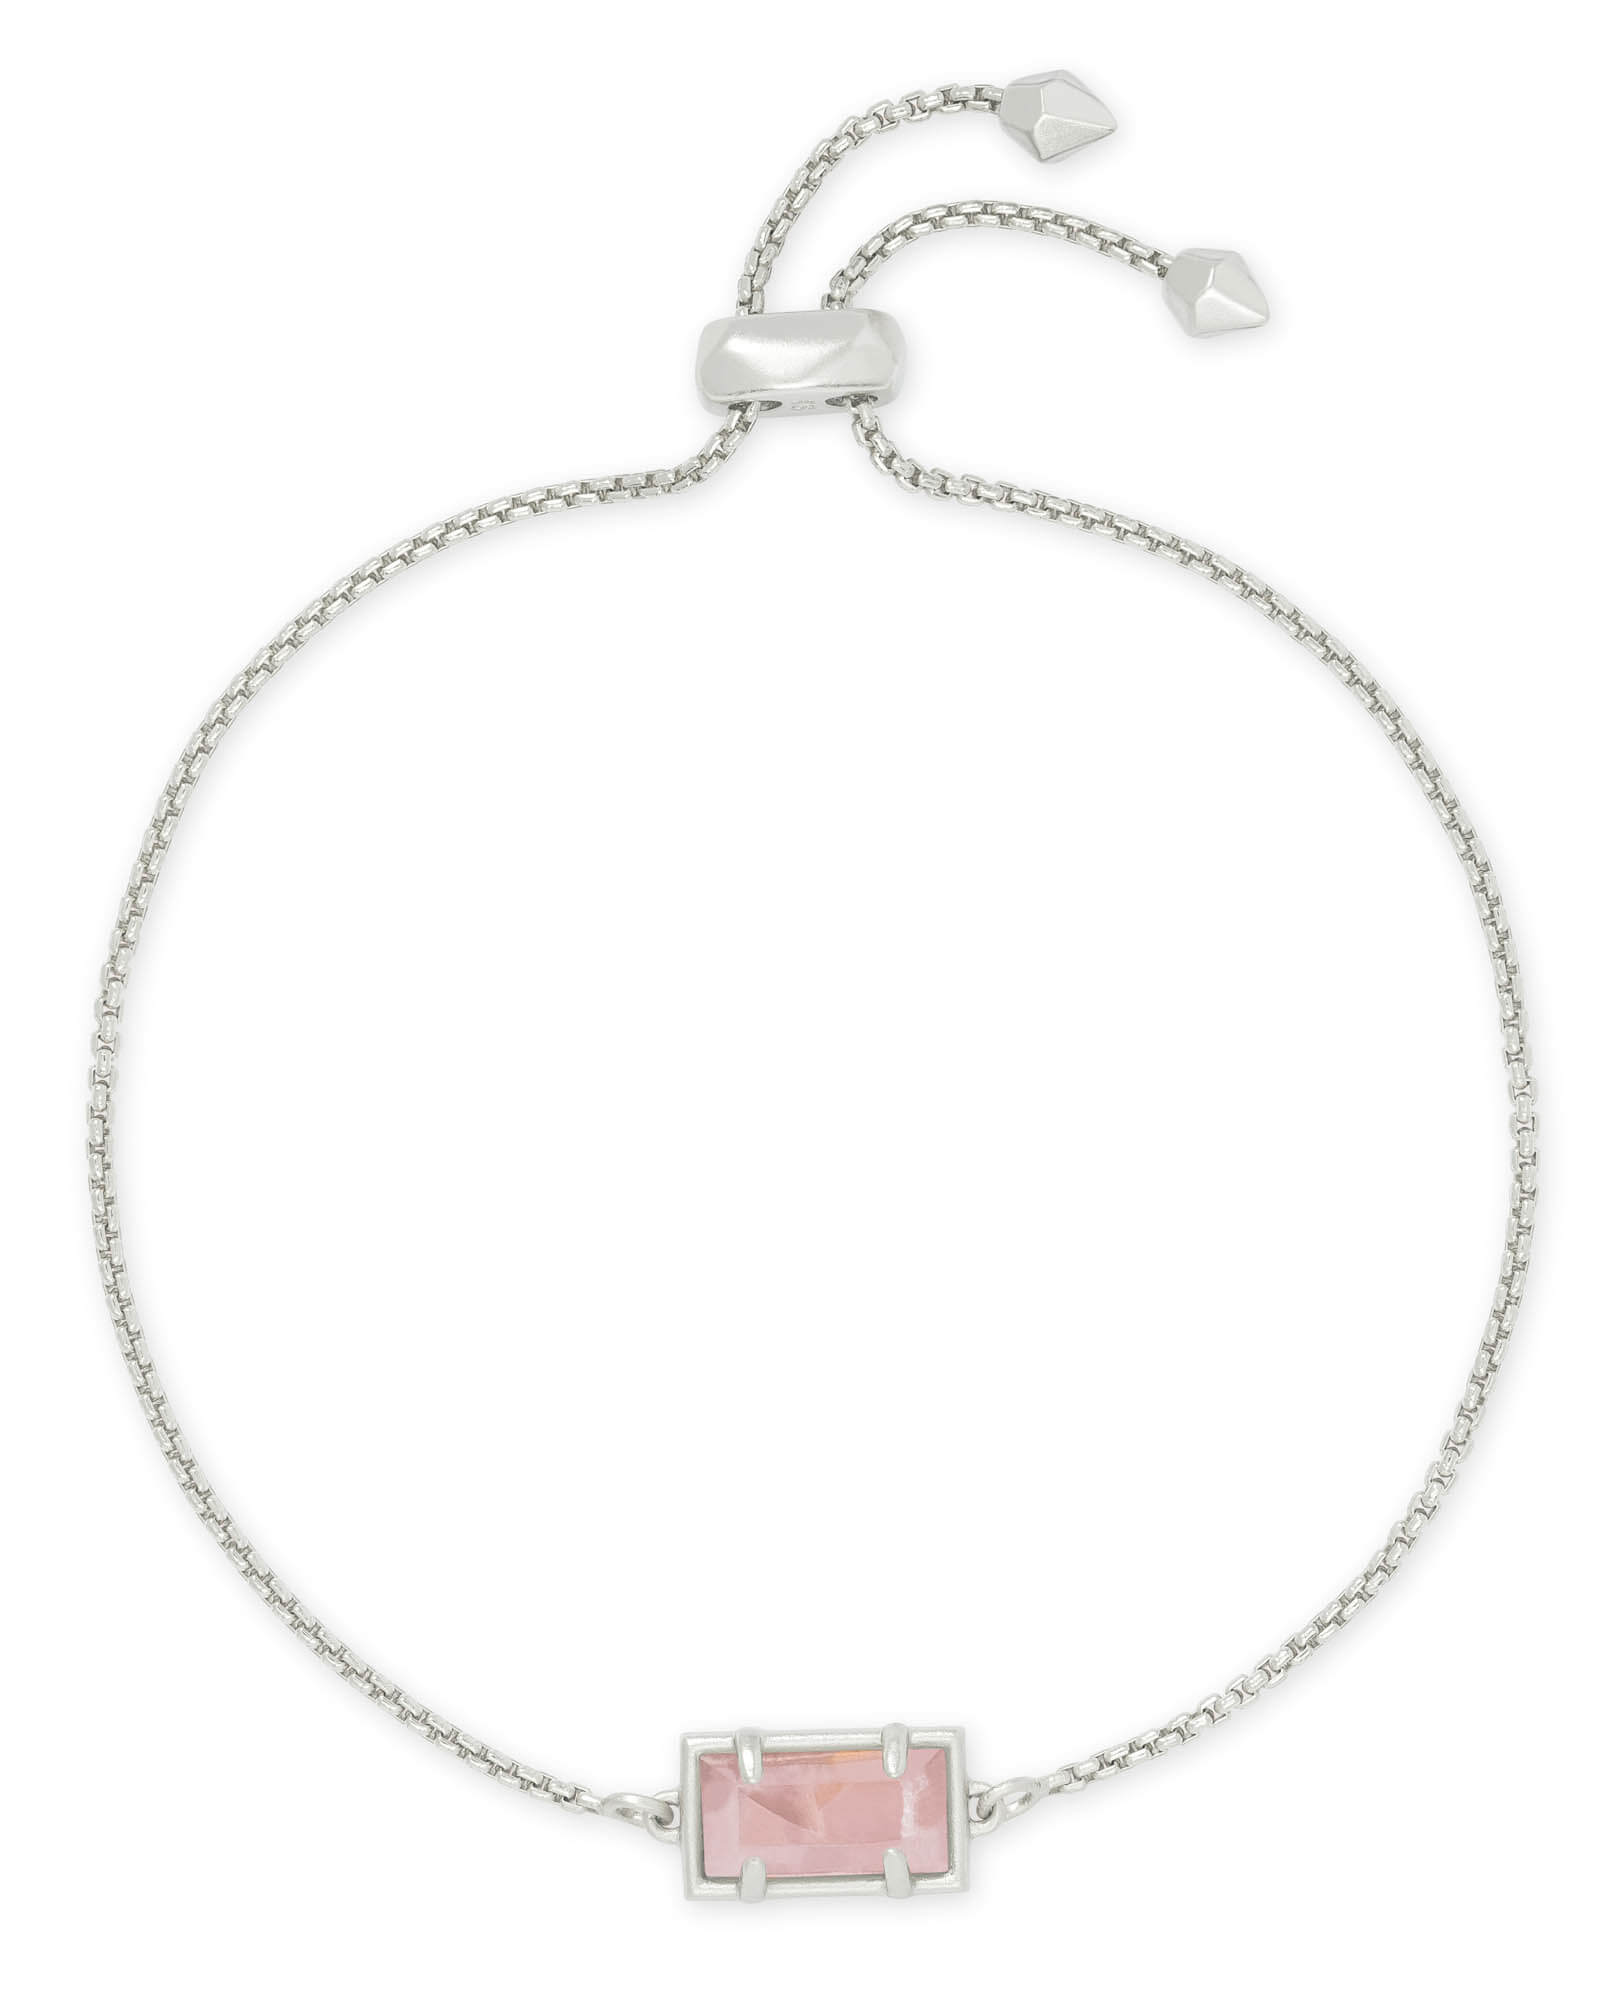 Phillipa Silver Chain Bracelet in Rose Quartz